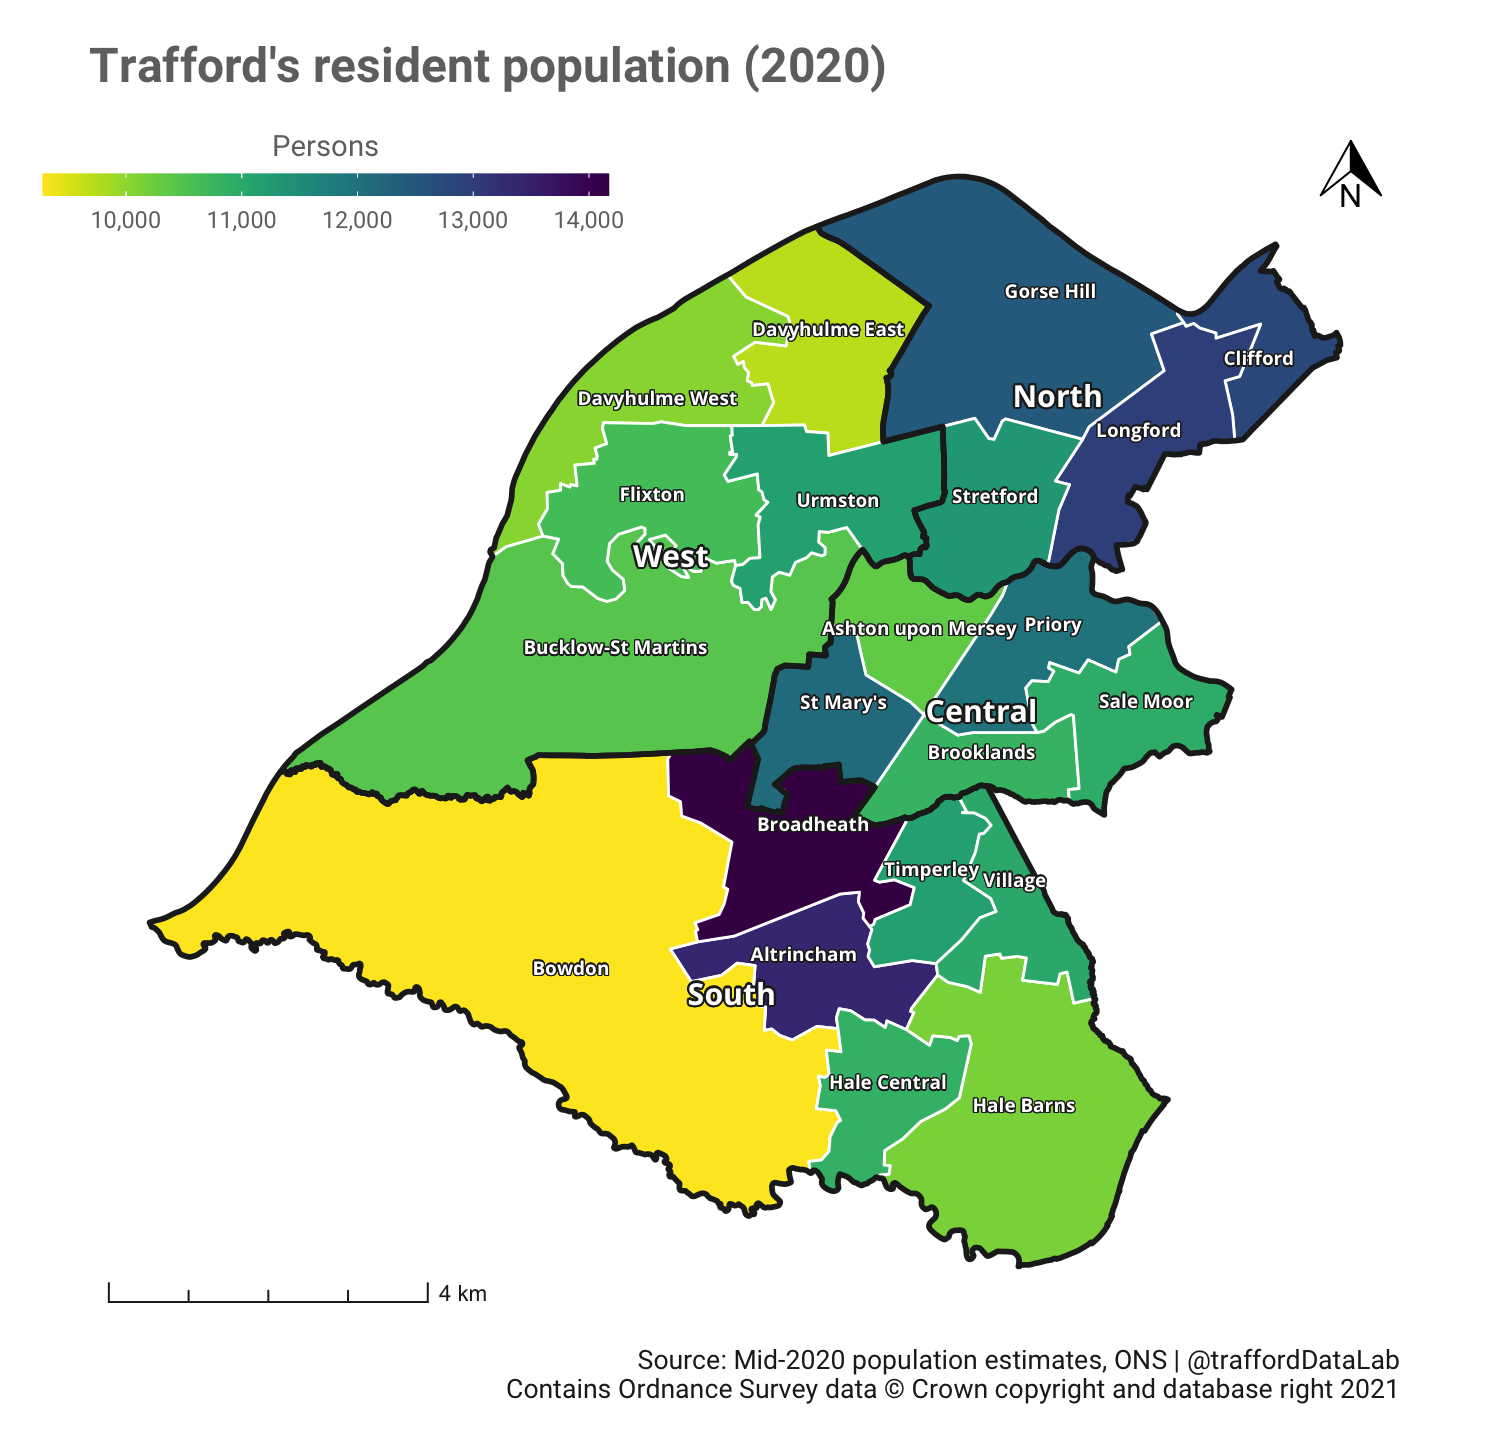 Map of Trafford showing the 21 wards coloured according to their mid-2020 population estimates.